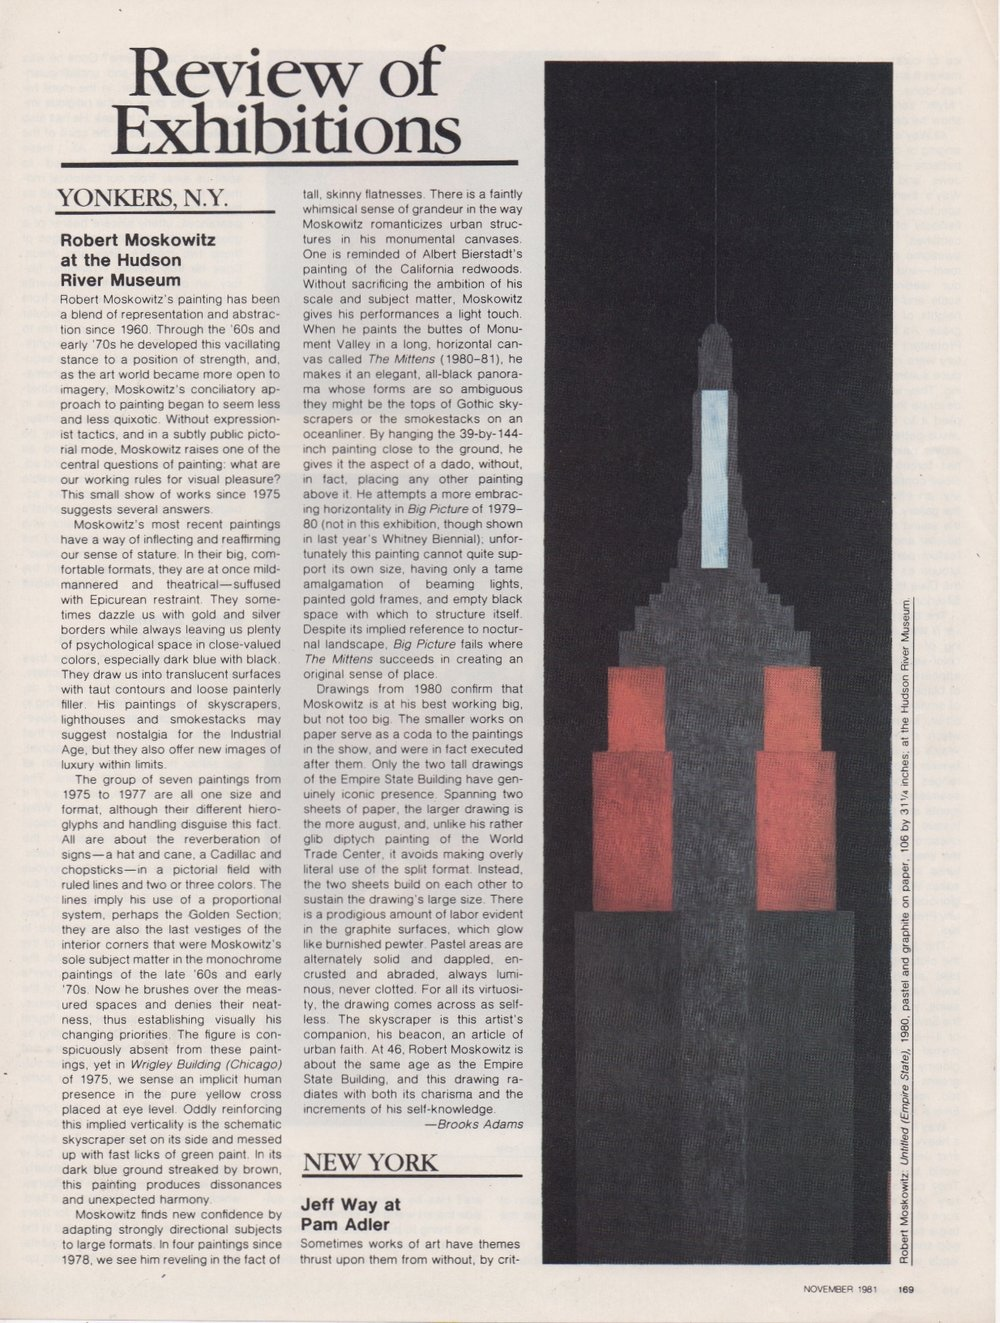 Review of Exhibitions, Ratcliff Carter, Art in America, 1981